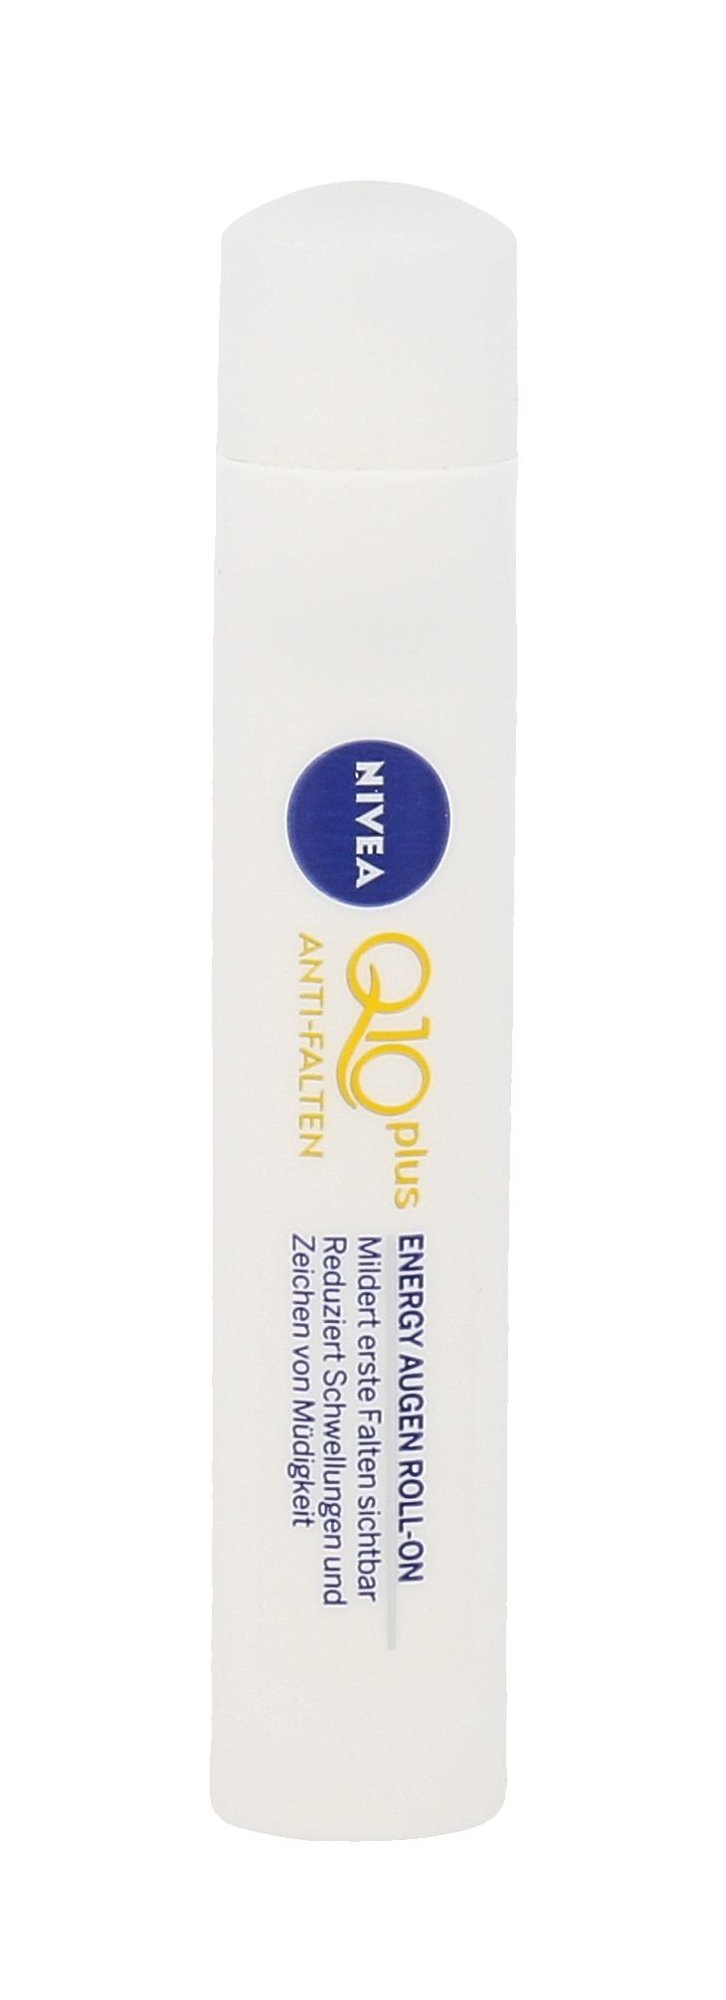 Nivea Q10 Plus Cosmetic 10ml